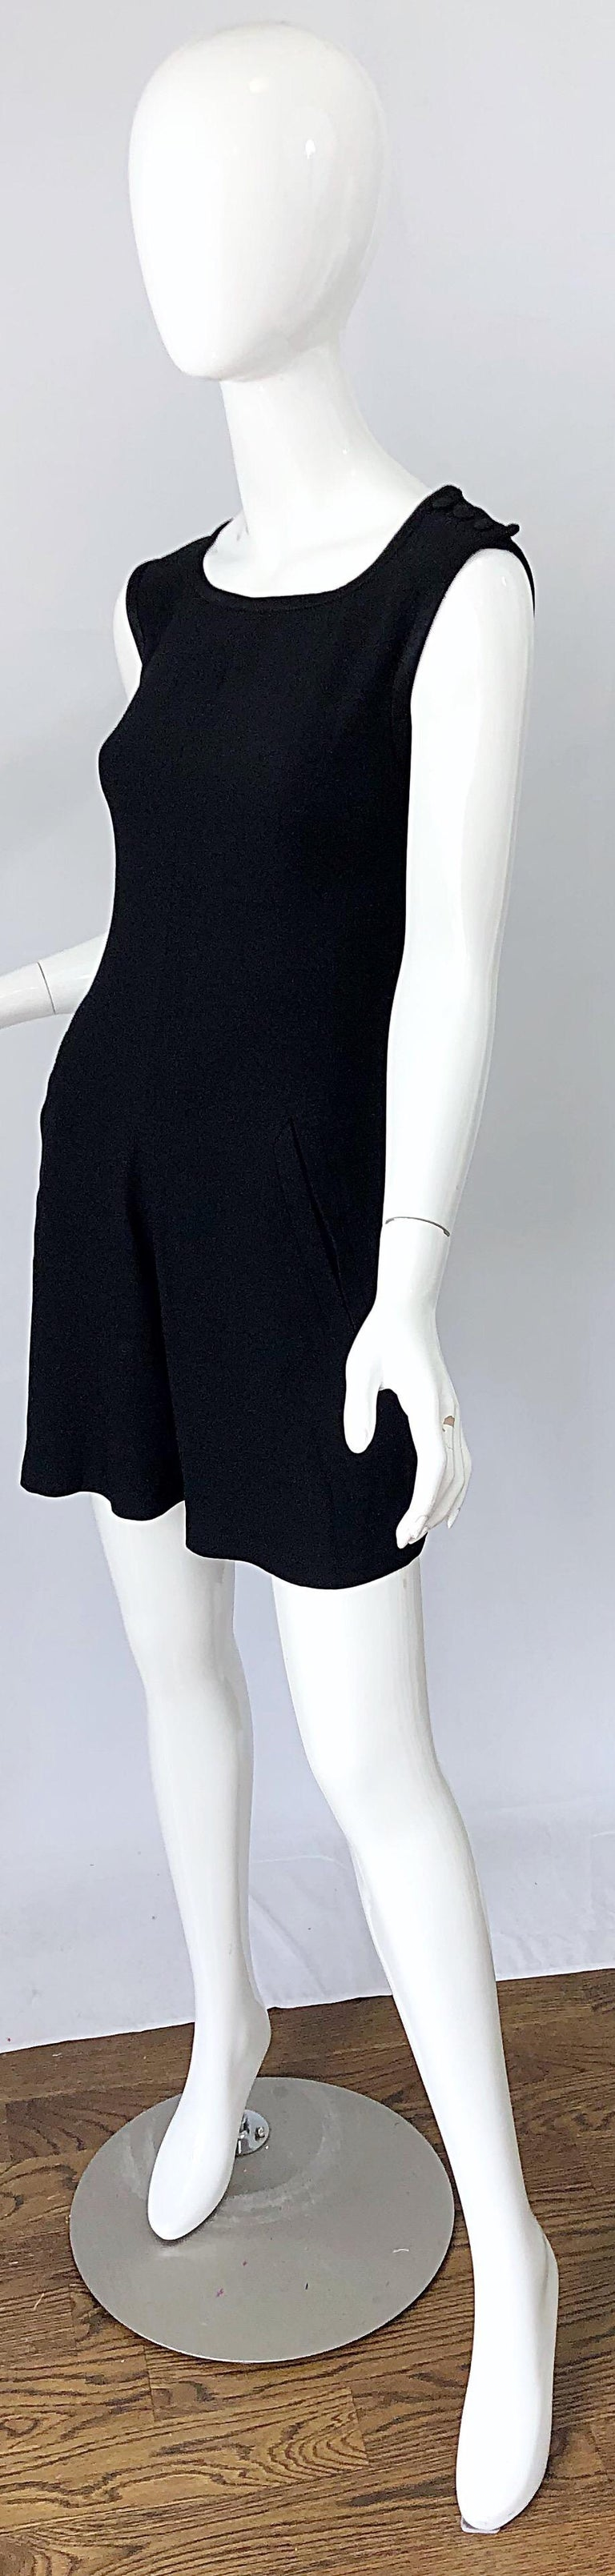 Vintage Yves Saint Laurent Romper Black Rayon Sleeveless 1990s One Piece 90s  For Sale 2